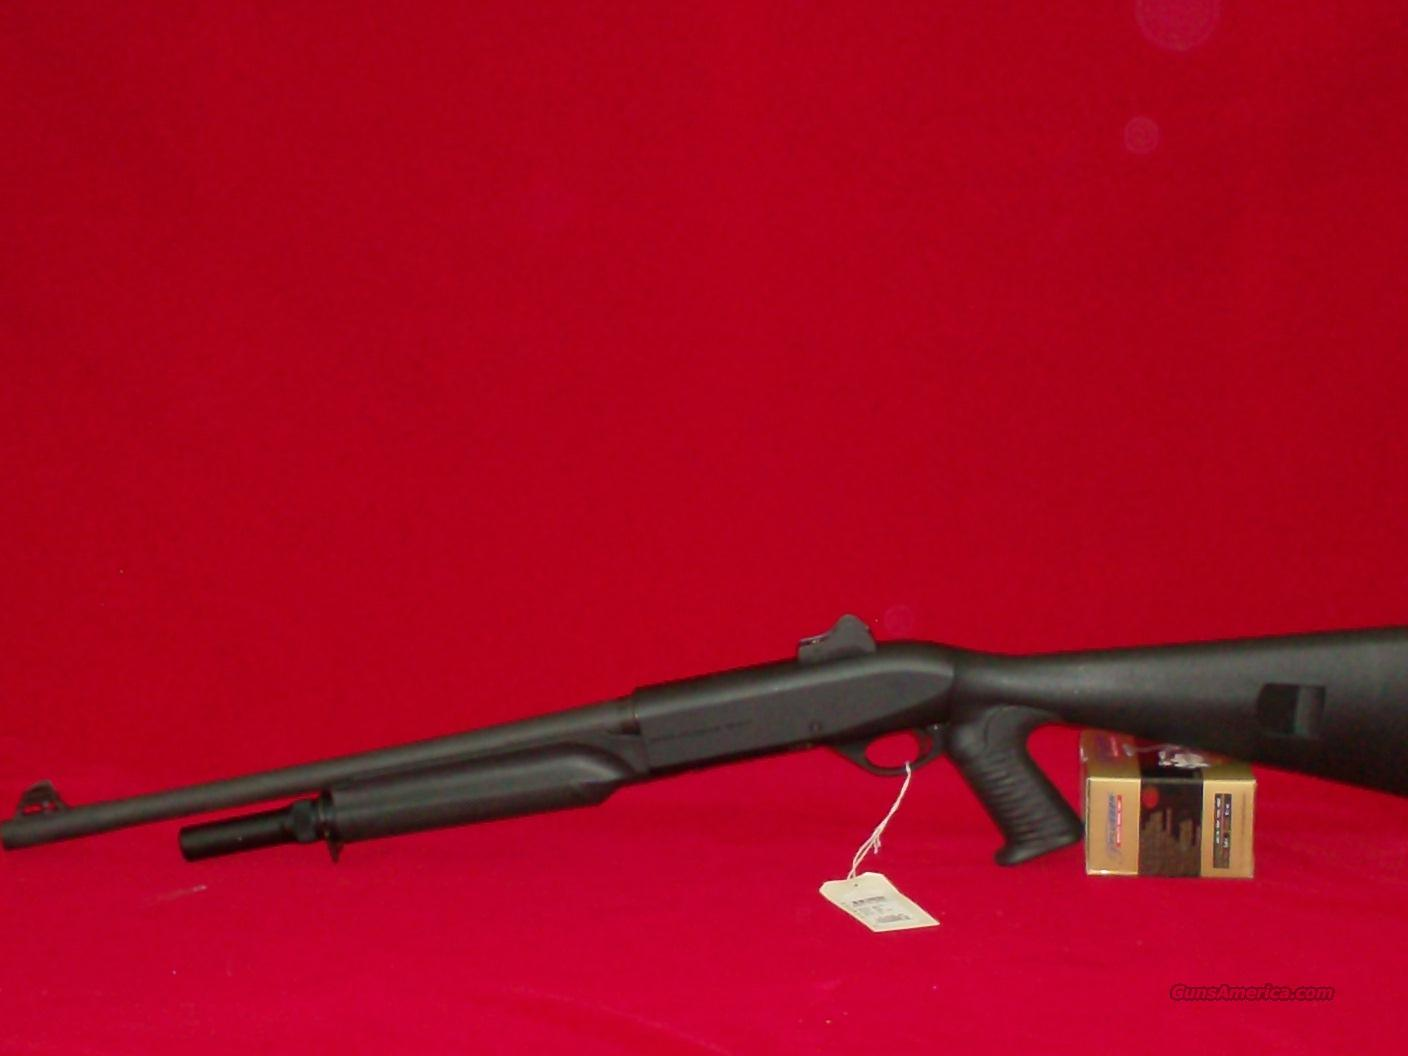 Benelli Tactical M2  Guns > Shotguns > Benelli Shotguns > Tactical